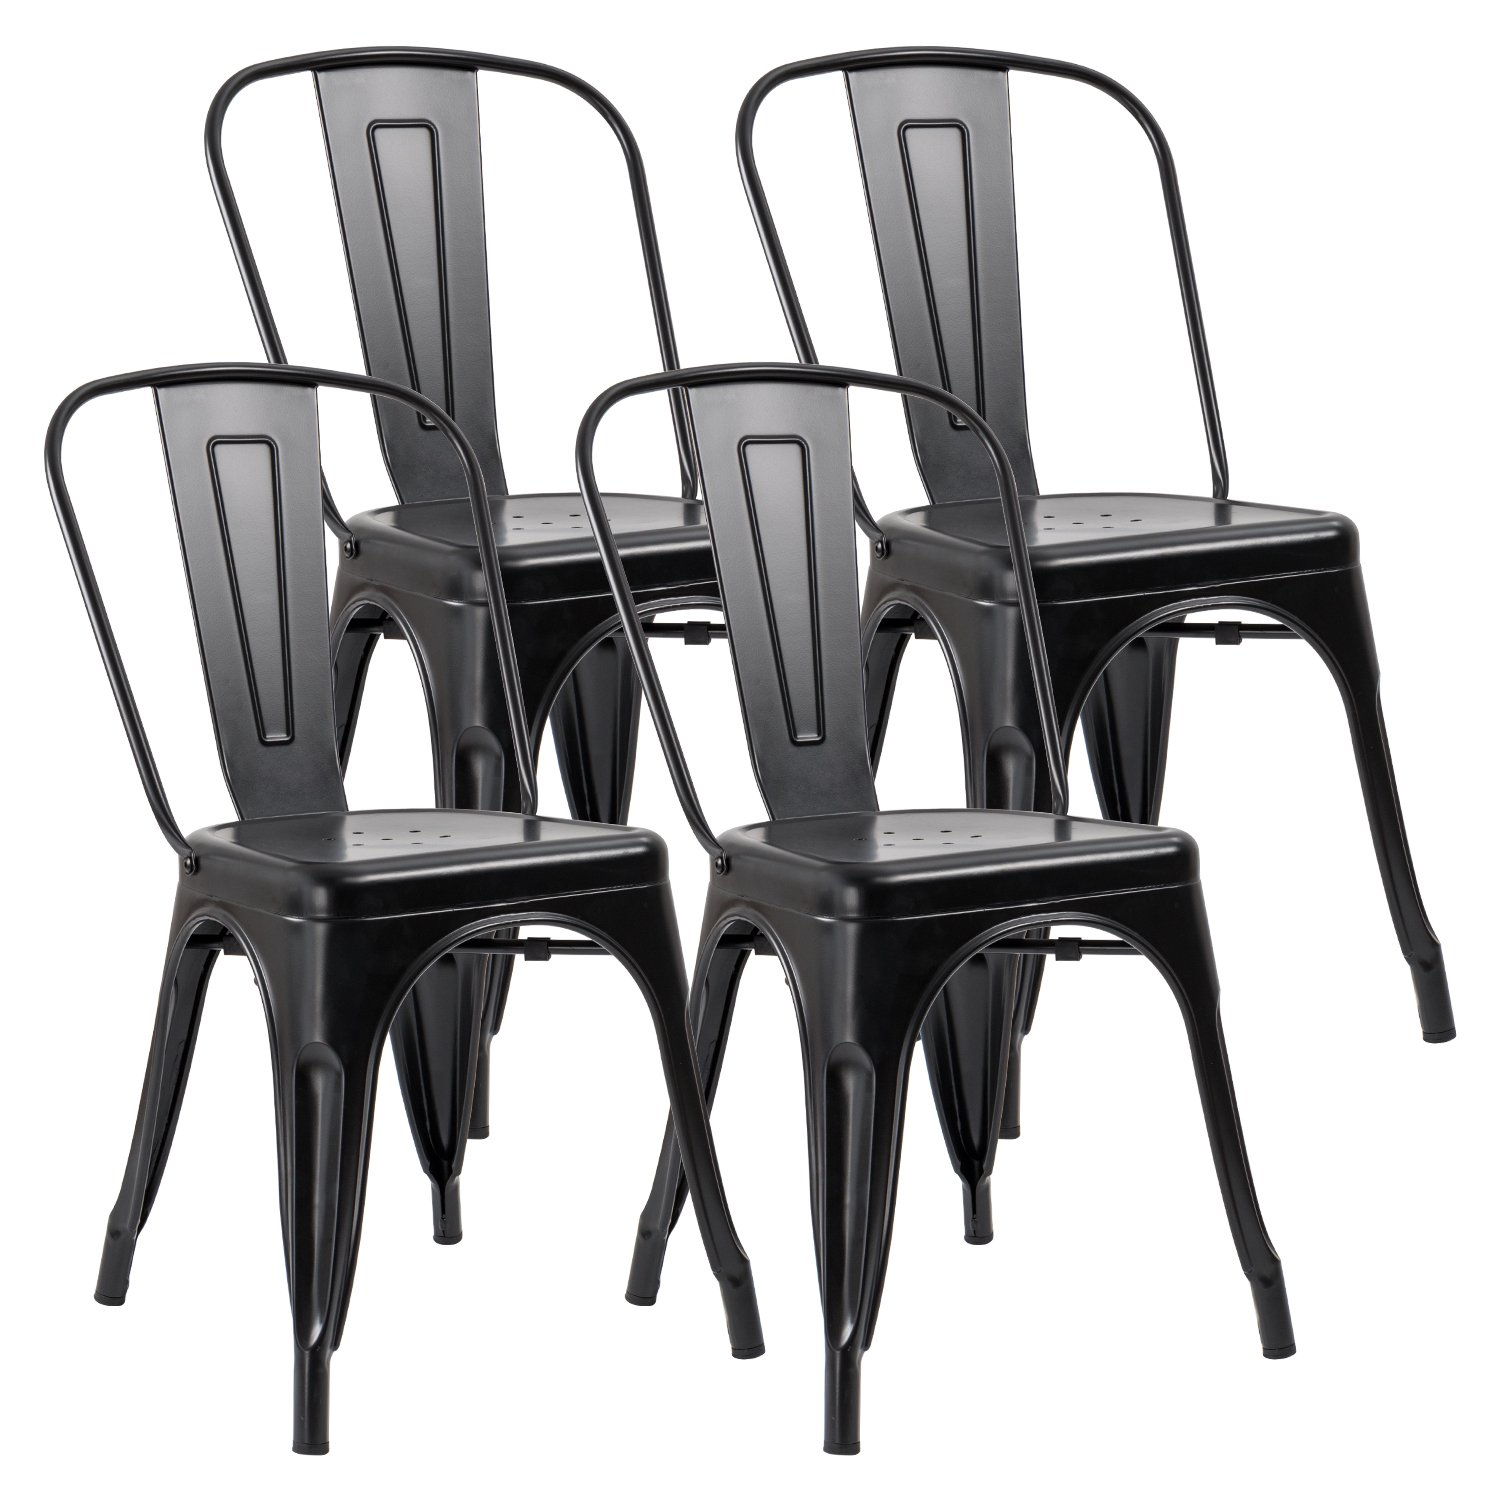 JUMMICO Metal Dining Chair Stackable Indoor-Outdoor Industrial Vintage Chairs Bistro Kitchen Cafe Side Chairs with Back Set of 4 (Black) by JUMMICO